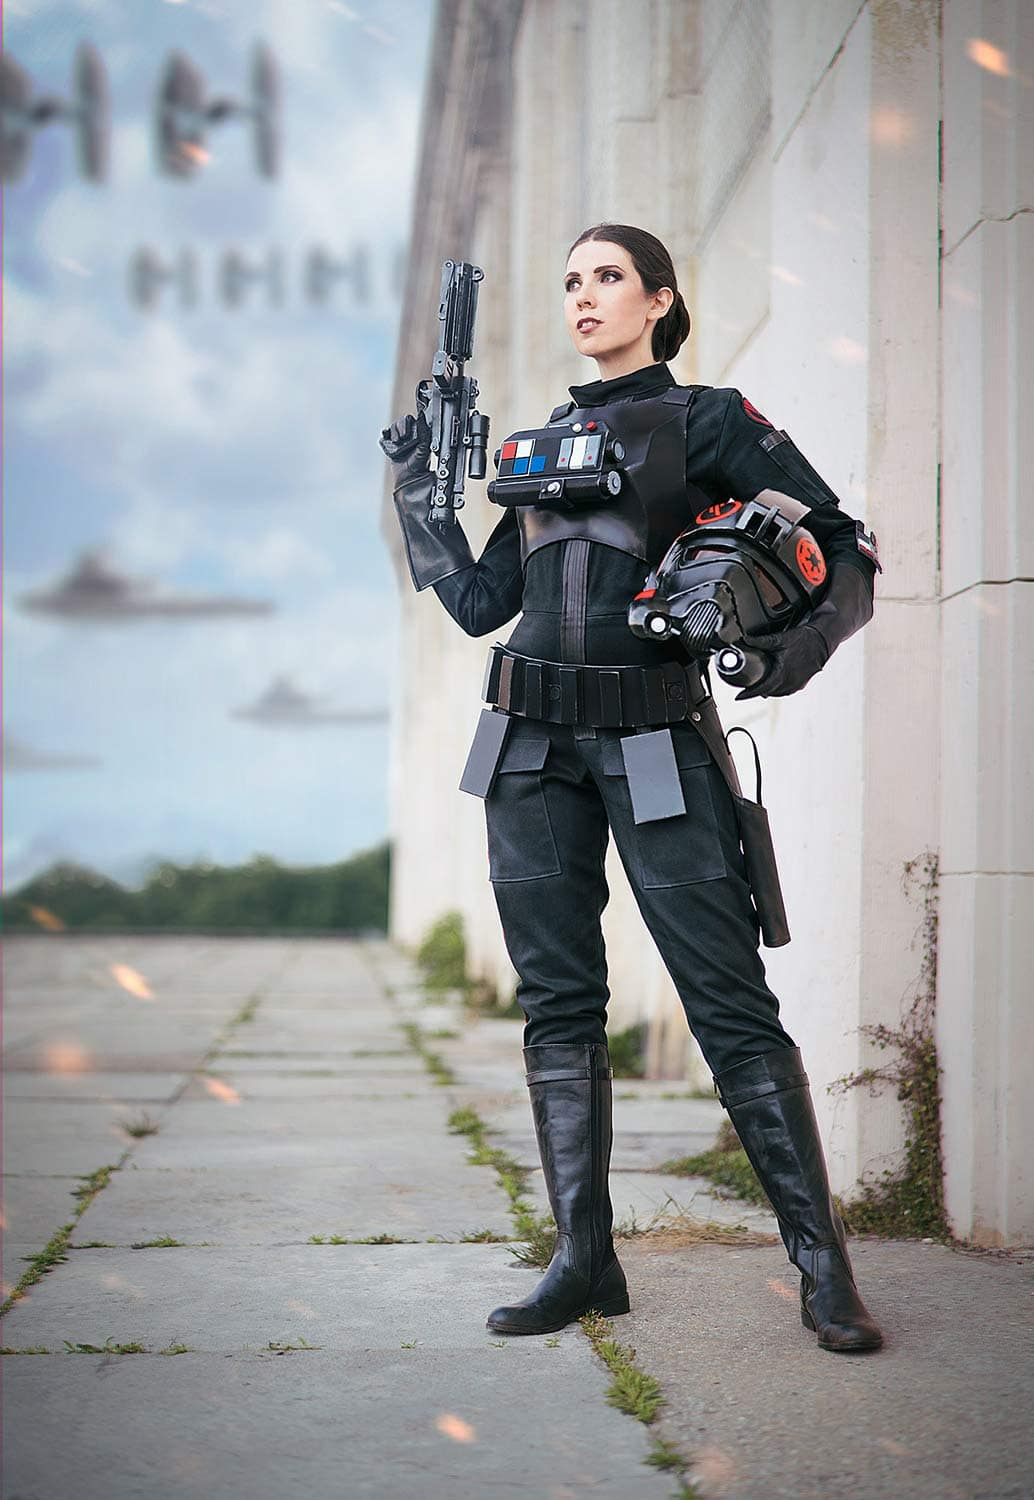 Star Wars Battlefront 2 Cosplay Commission